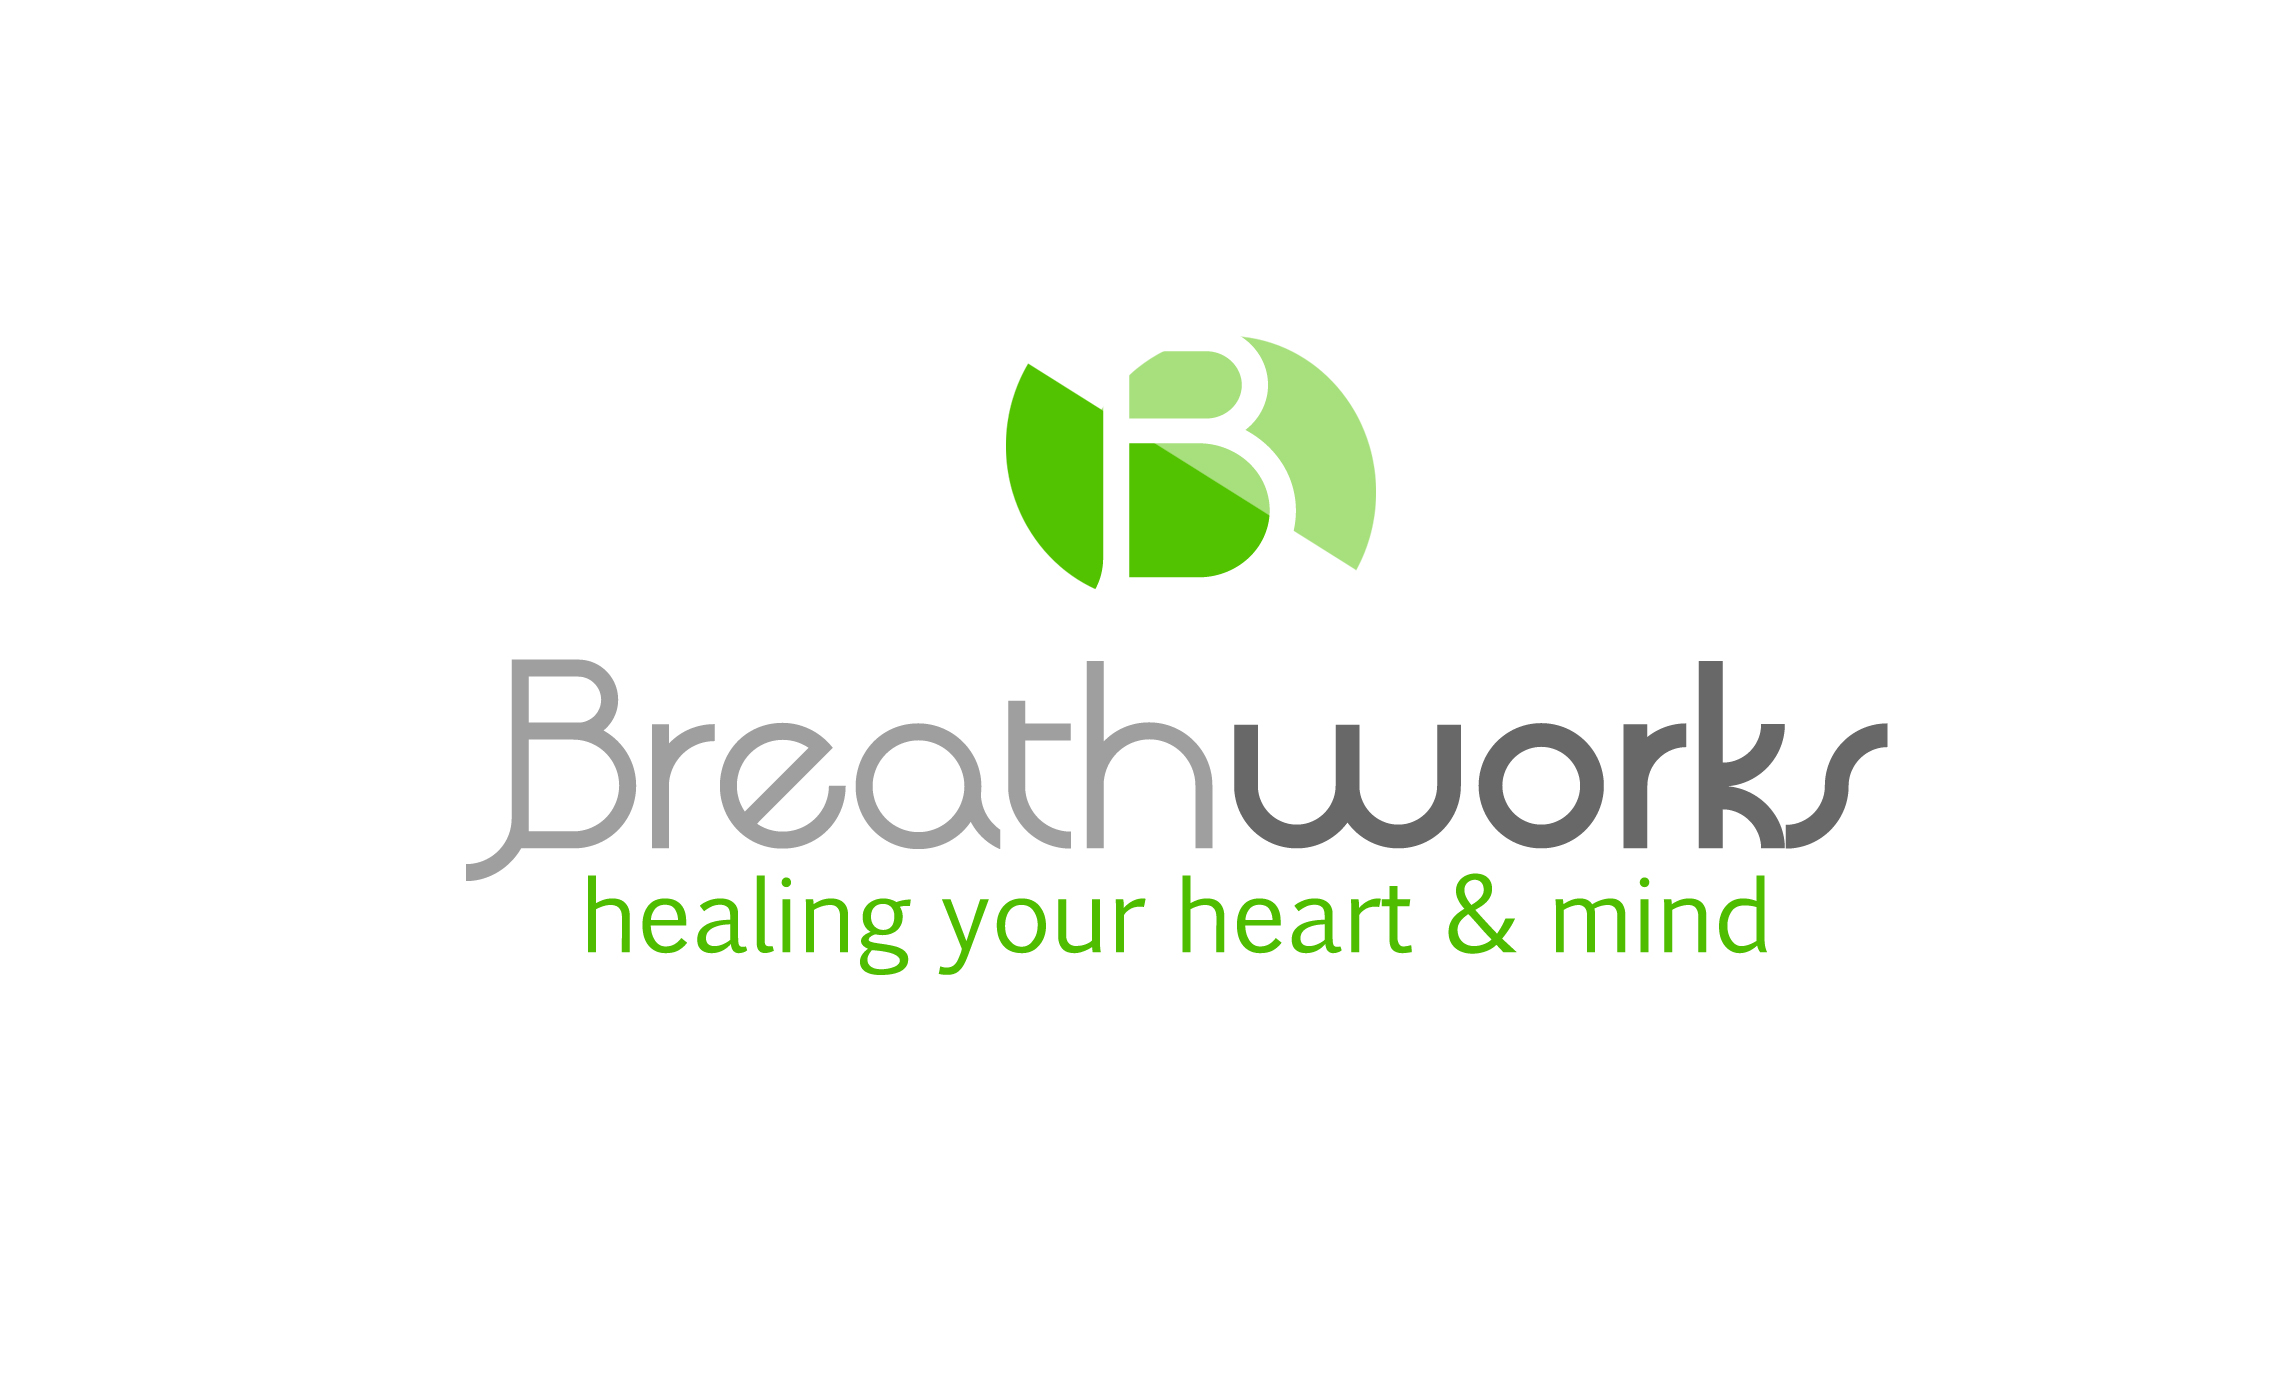 Logo Design by Lama Creative - Entry No. 28 in the Logo Design Contest New Logo Design for Breathworks.